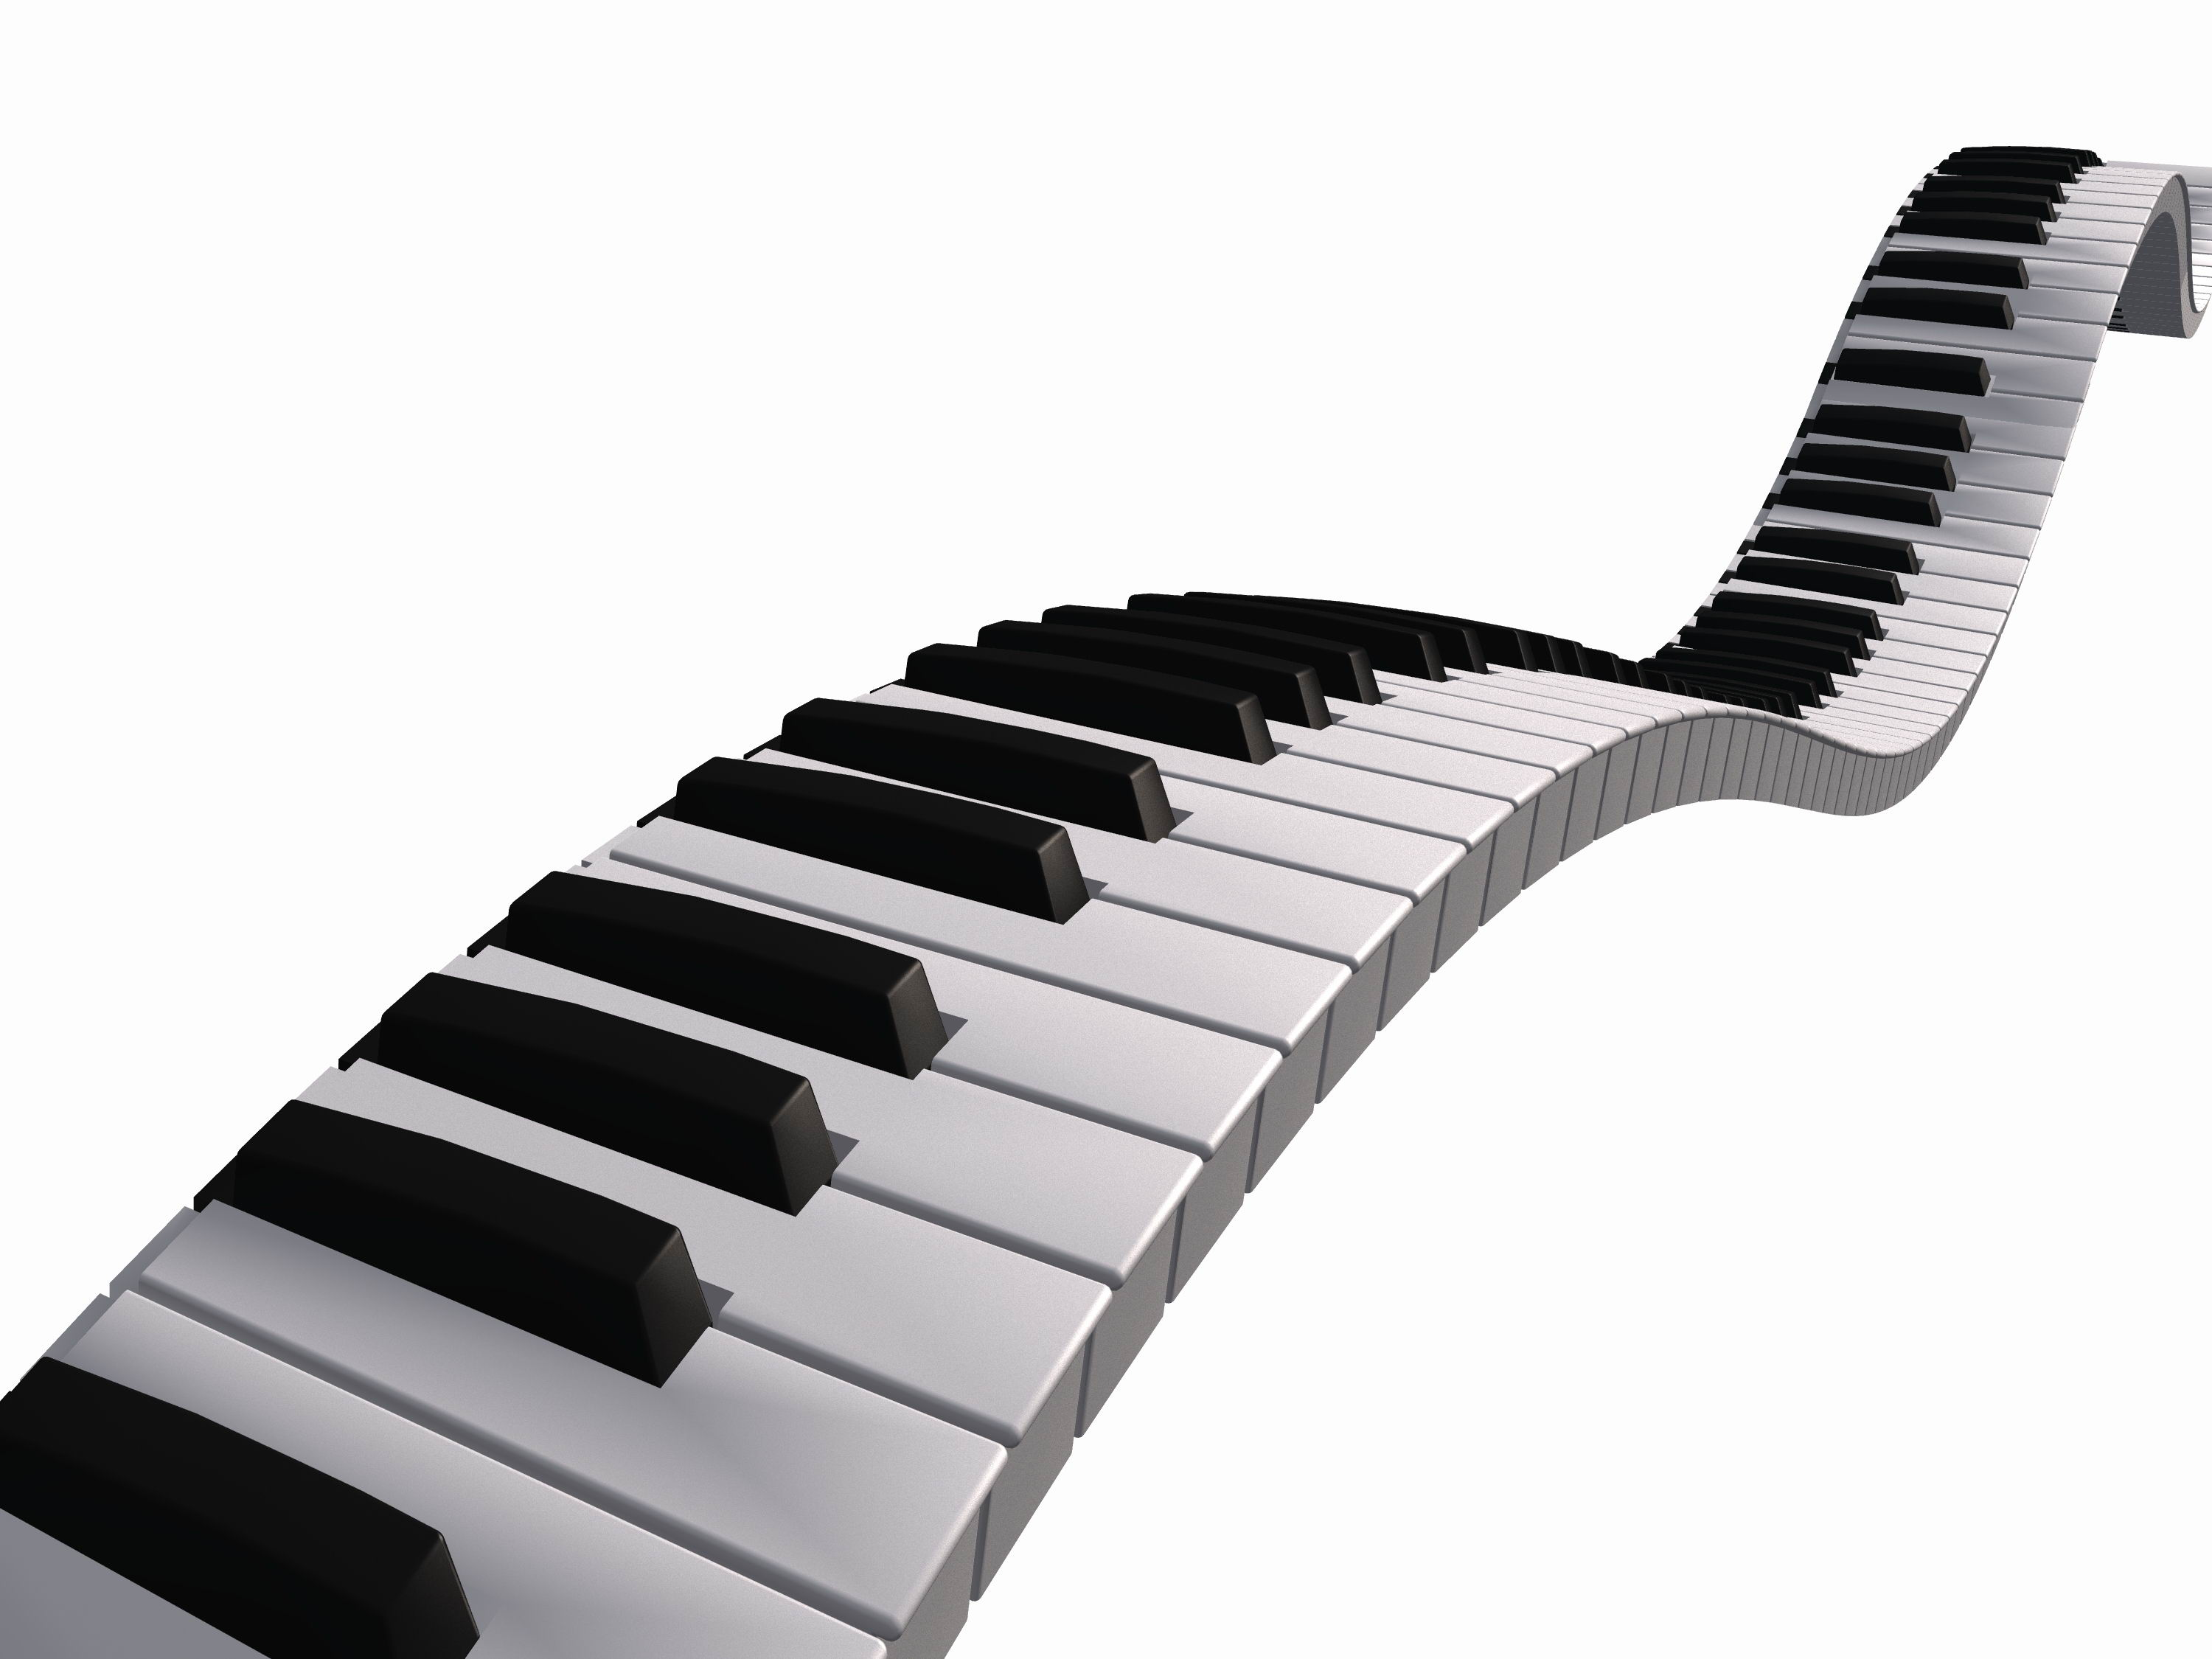 Notes panda free images. Piano clipart wavy